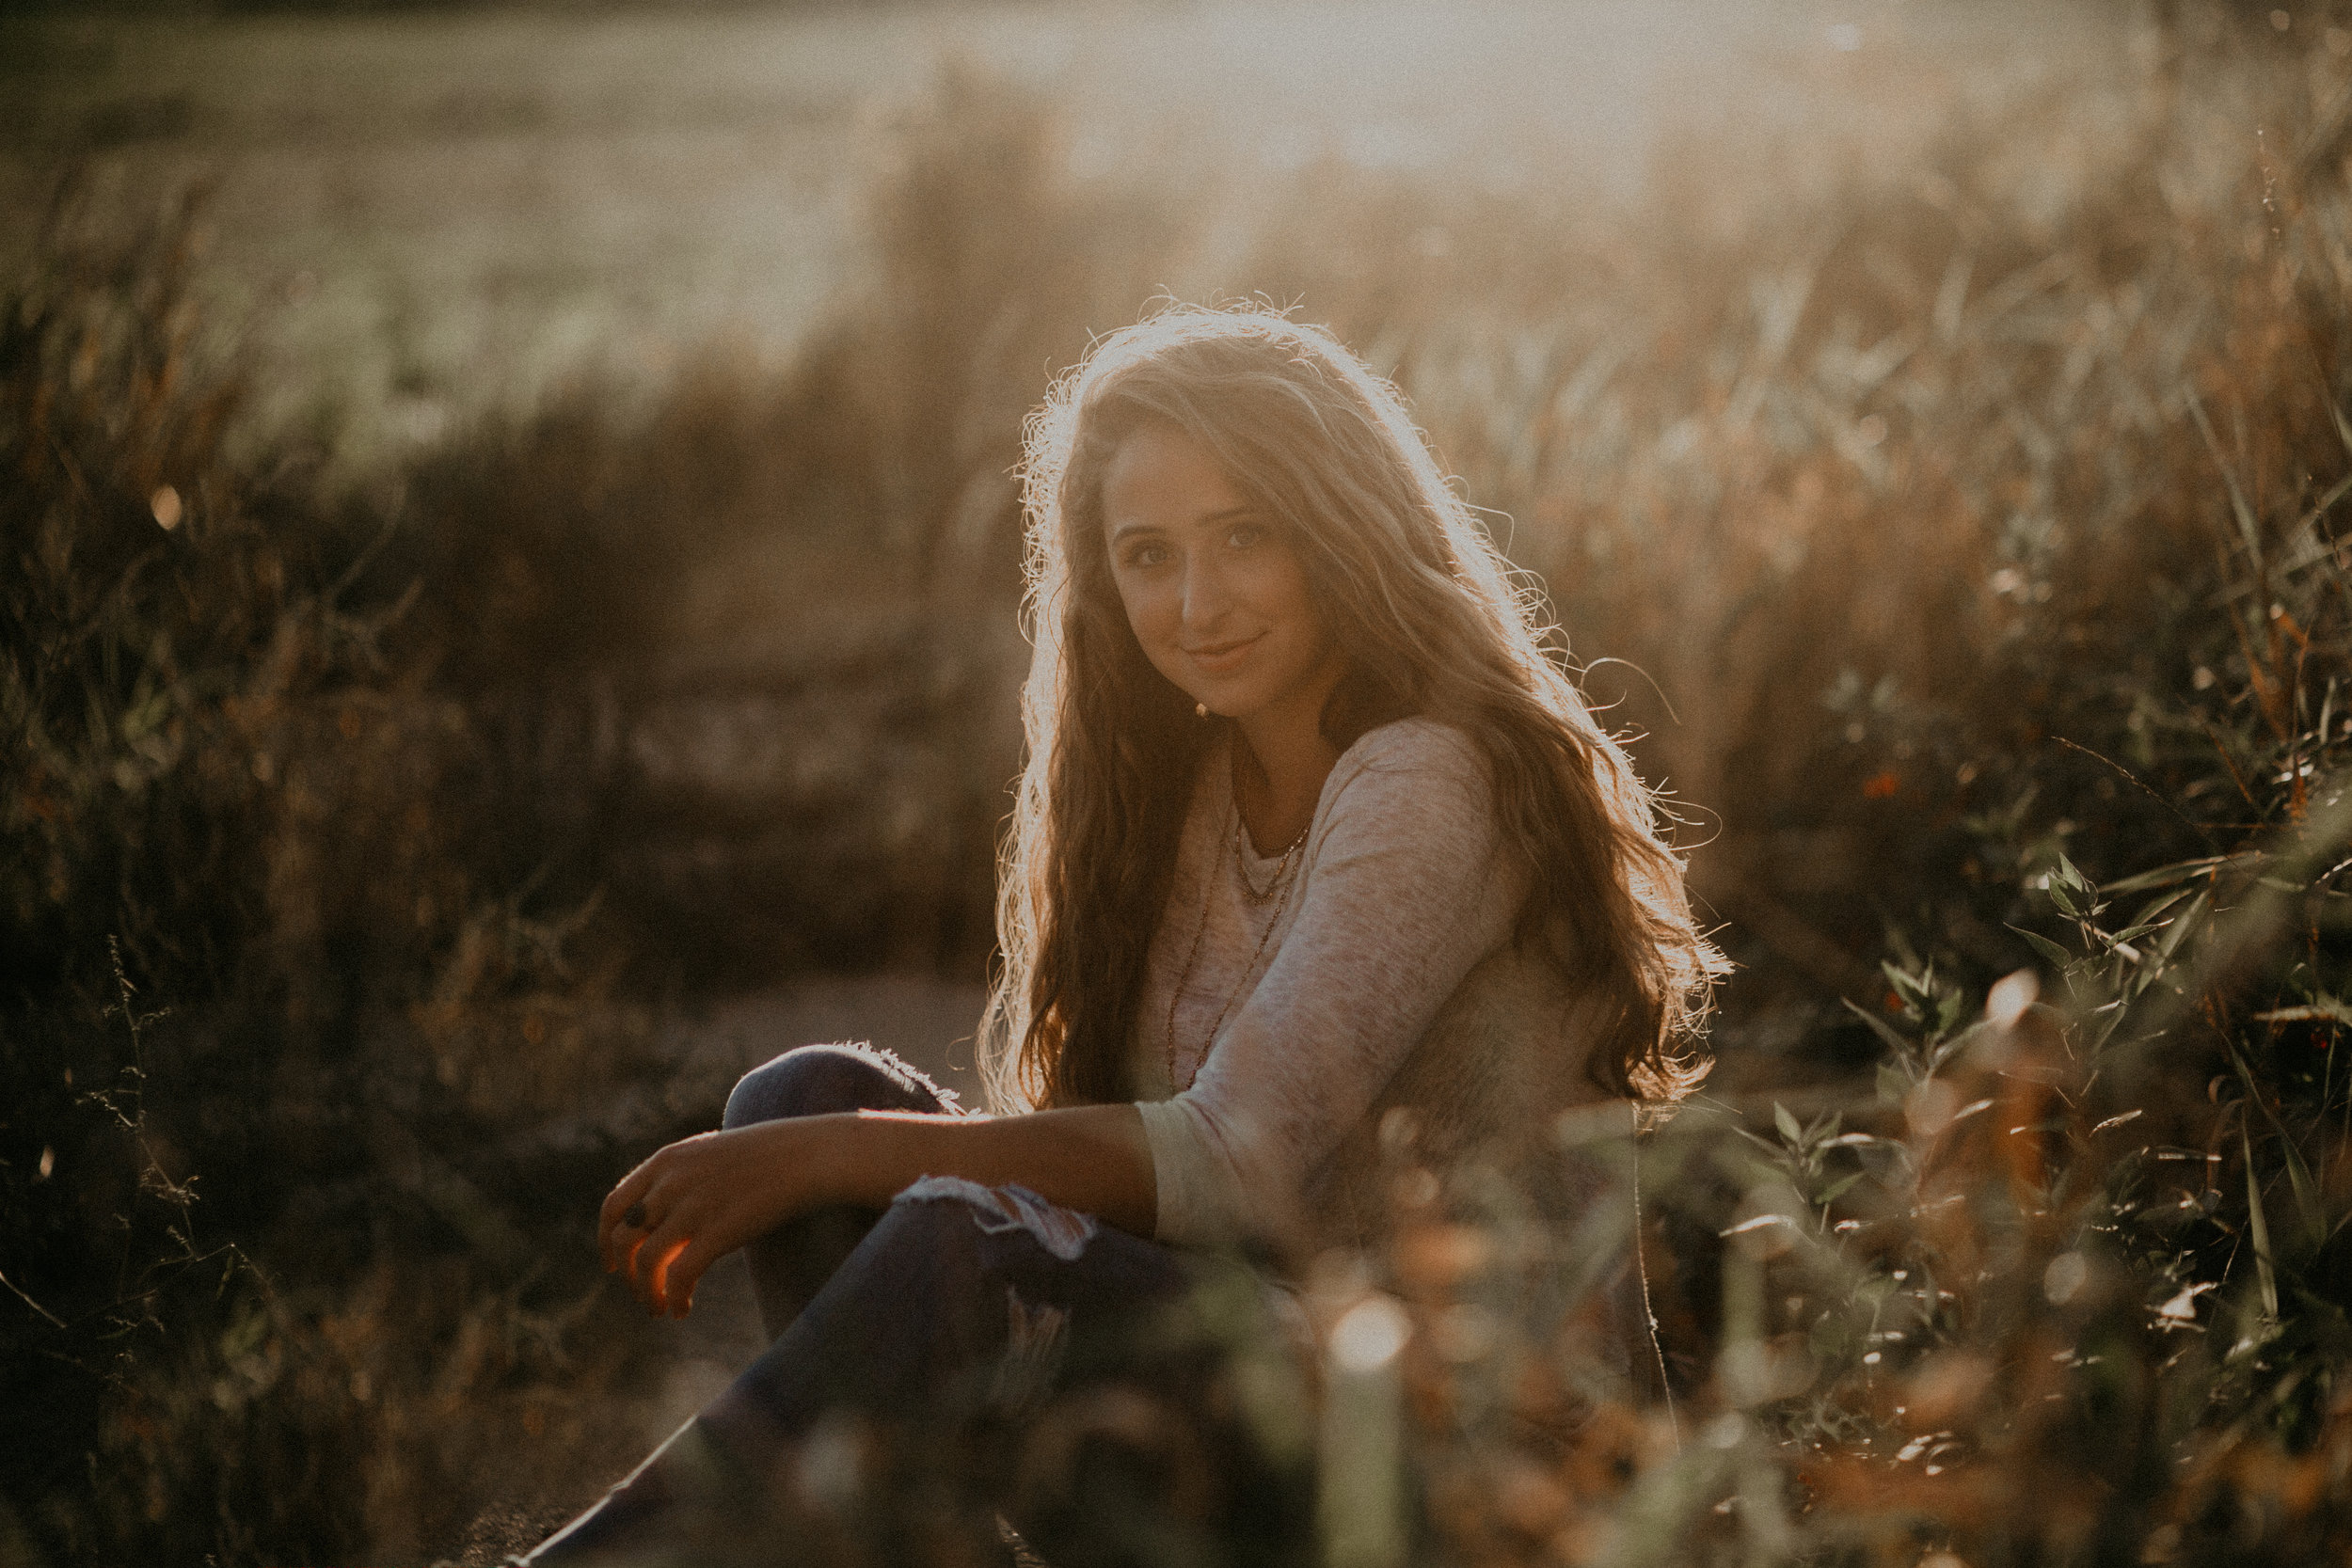 senior-portraits-field-chili-wi-sunset-dara-stichert